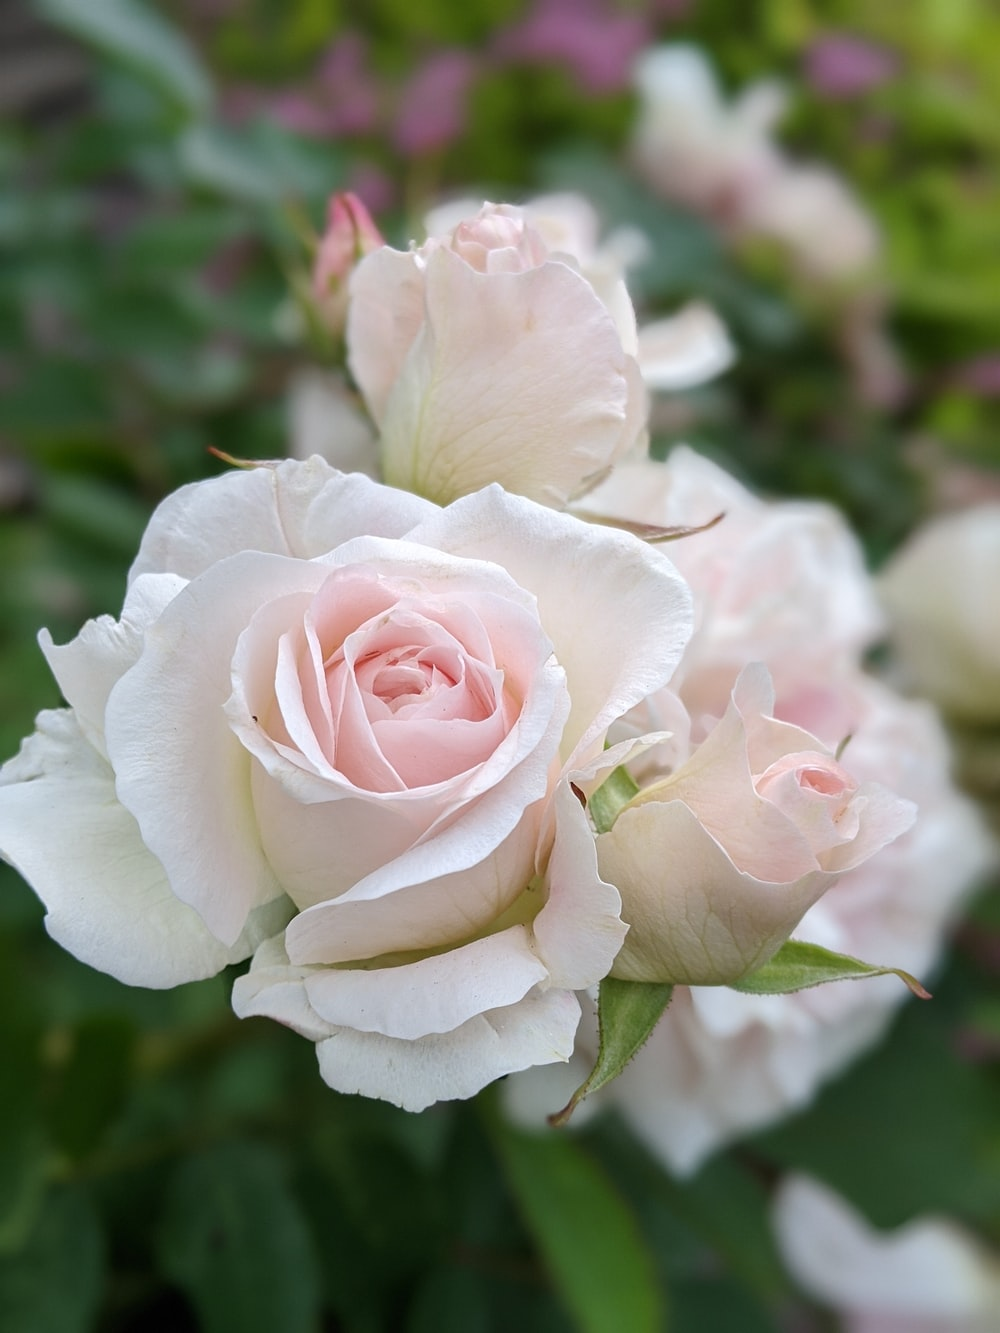 pink and white rose in bloom during daytime